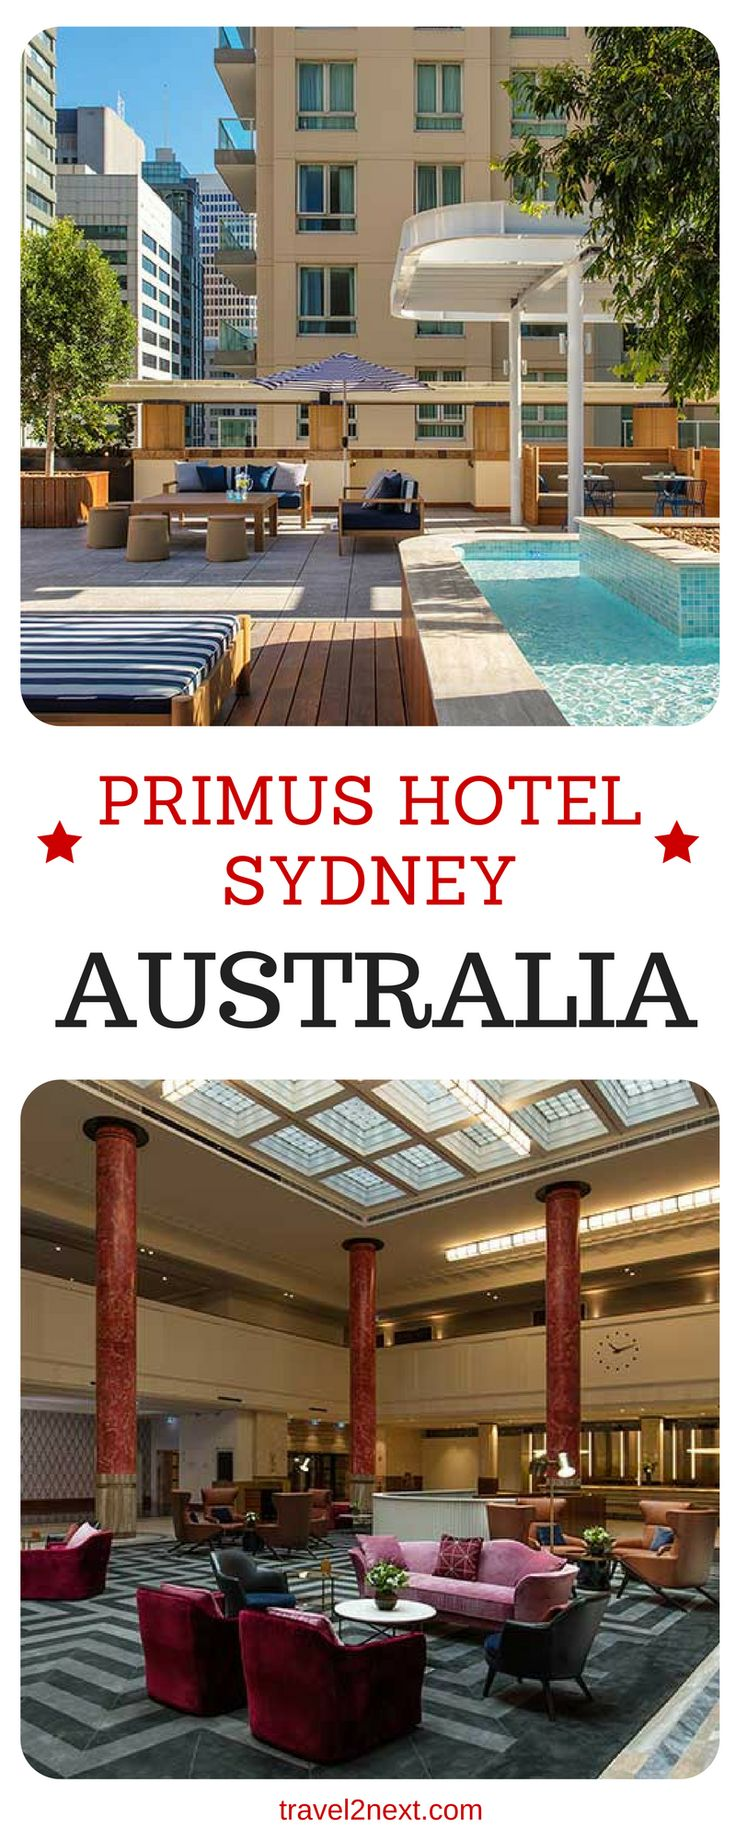 Primus Hotel Sydney – Gatsby glamour. Primus Hotel, Sydney's newest five-star hotel, is the sort of place that Jay Gatsby might like to check into.